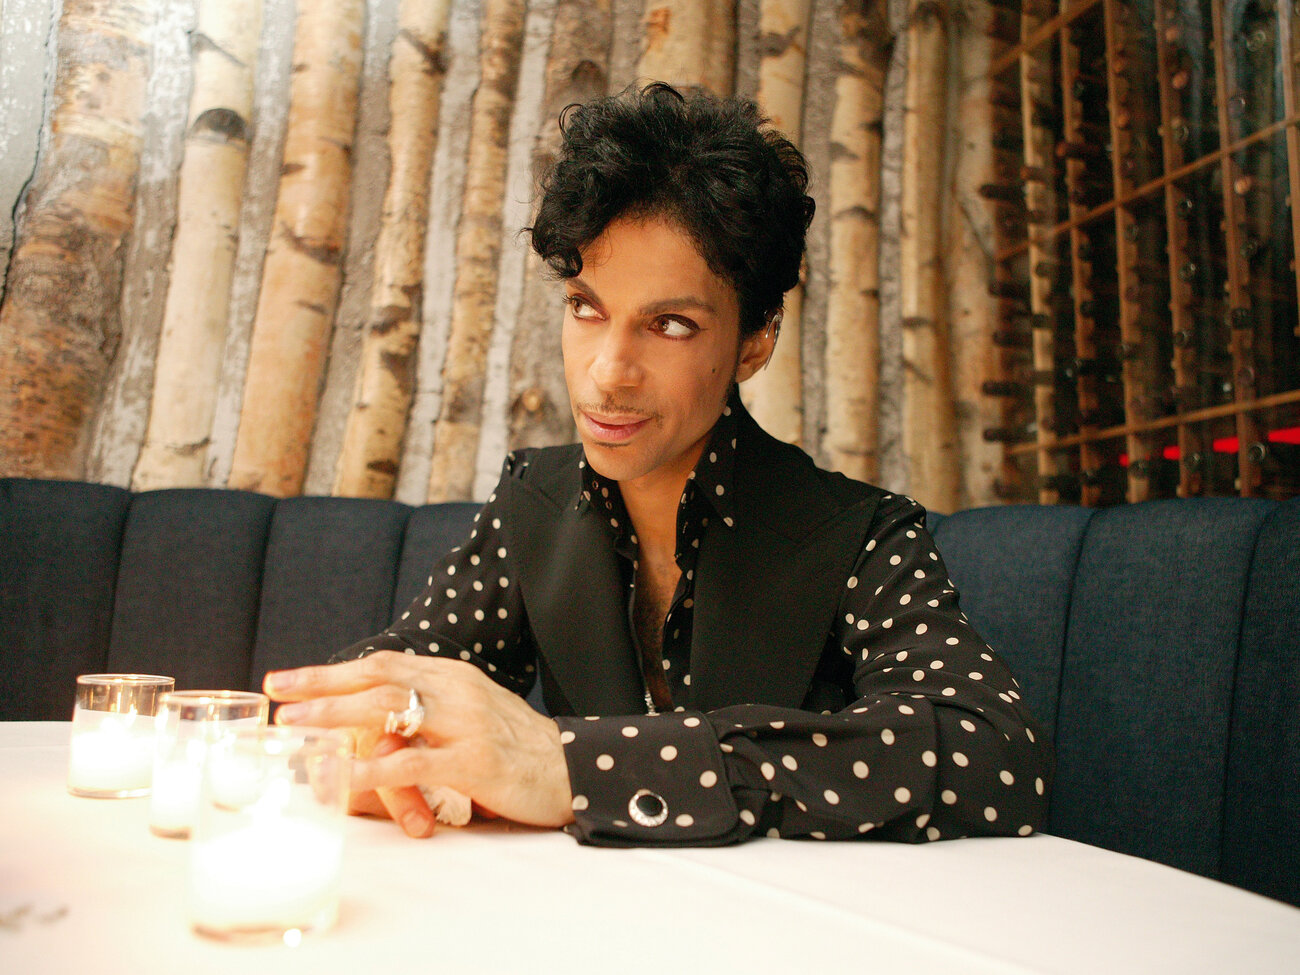 Prince is discussing everything from love to the constellations, 2004. (Afshin Shahidi/Prince: A Private View)